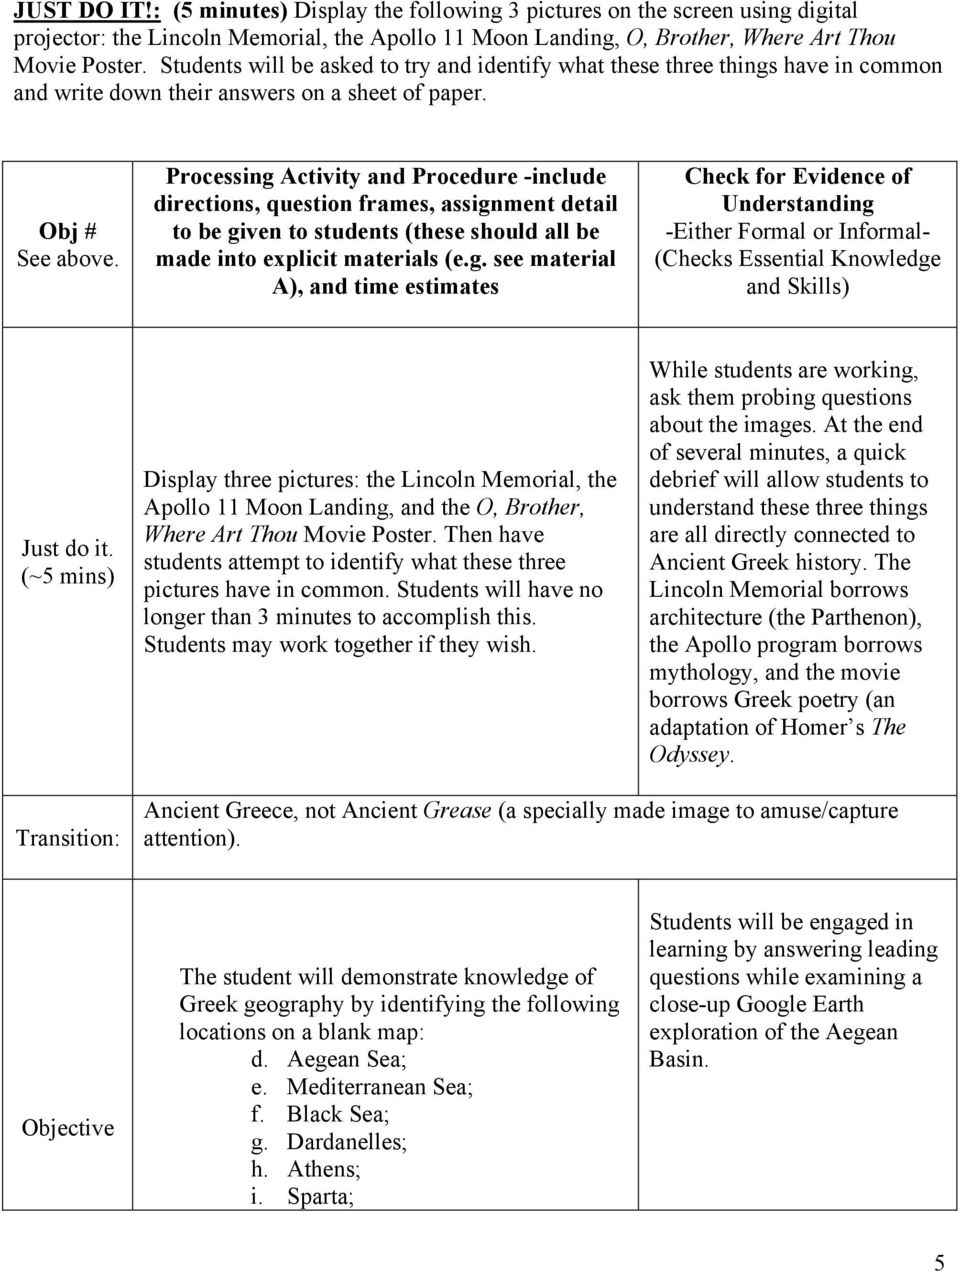 Processing Activity and Procedure -include directions, question frames, assignment detail to be given to students (these should all be made into explicit materials (e.g. see material A), and time estimates Check for Evidence of Understanding -Either Formal or Informal- (Checks Essential Knowledge and Skills) Just do it.